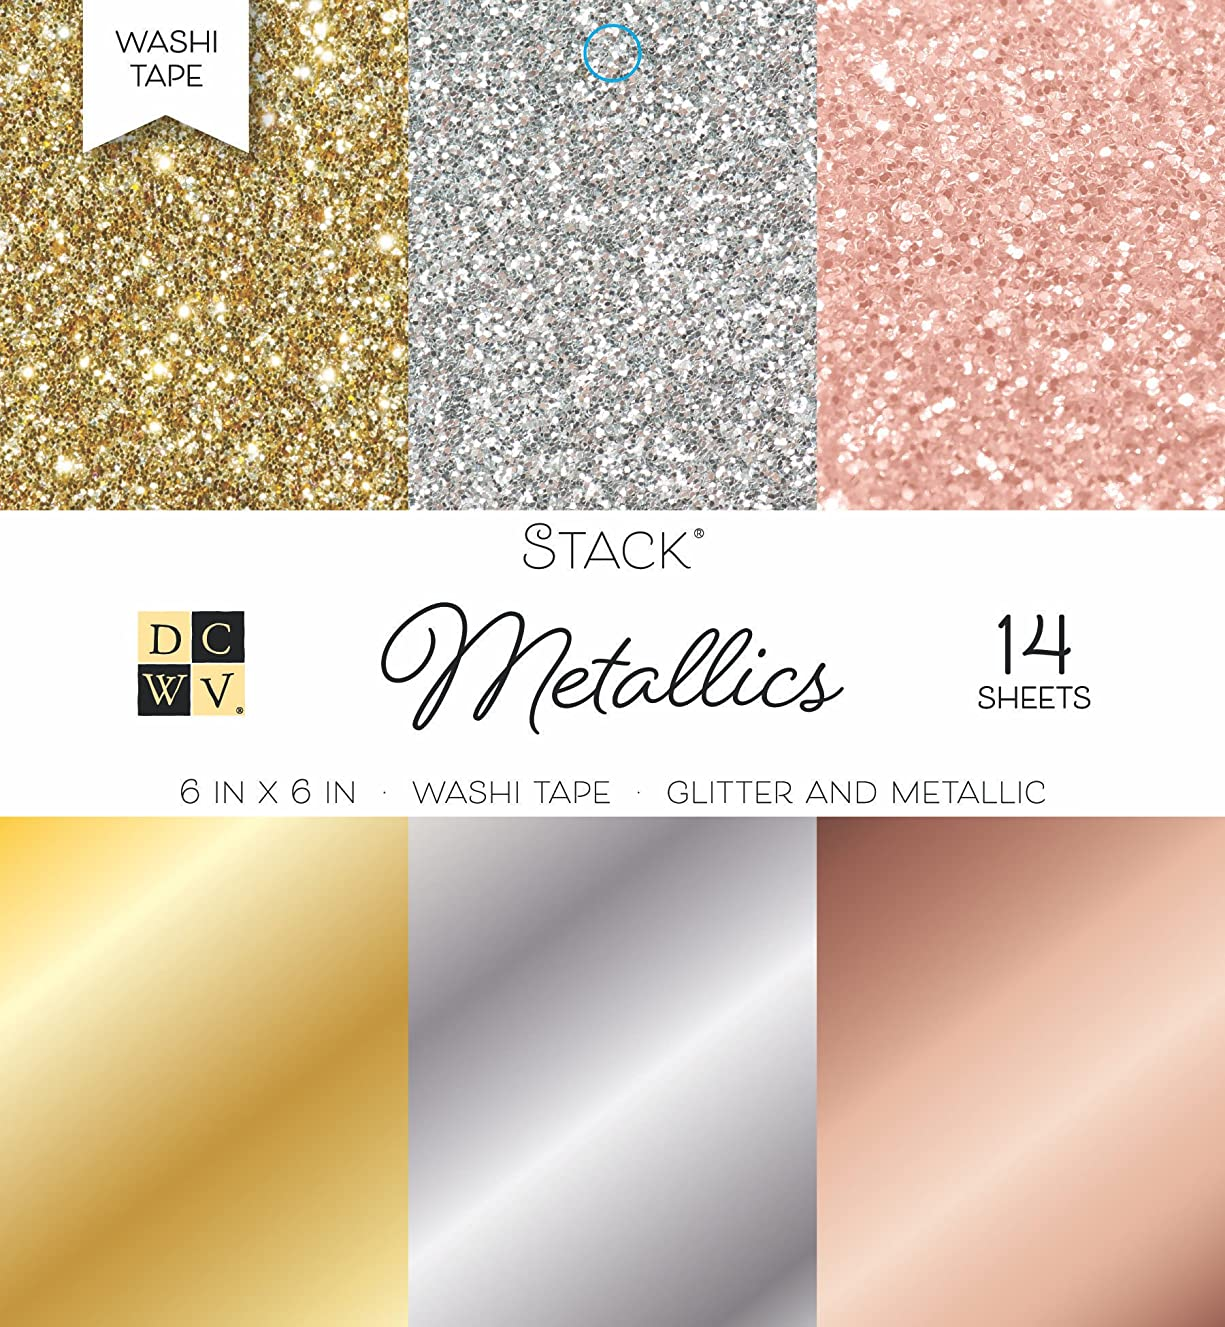 DCWV Card Stock 6X6 Washi Metallic Stack, 14 Sheets, 6